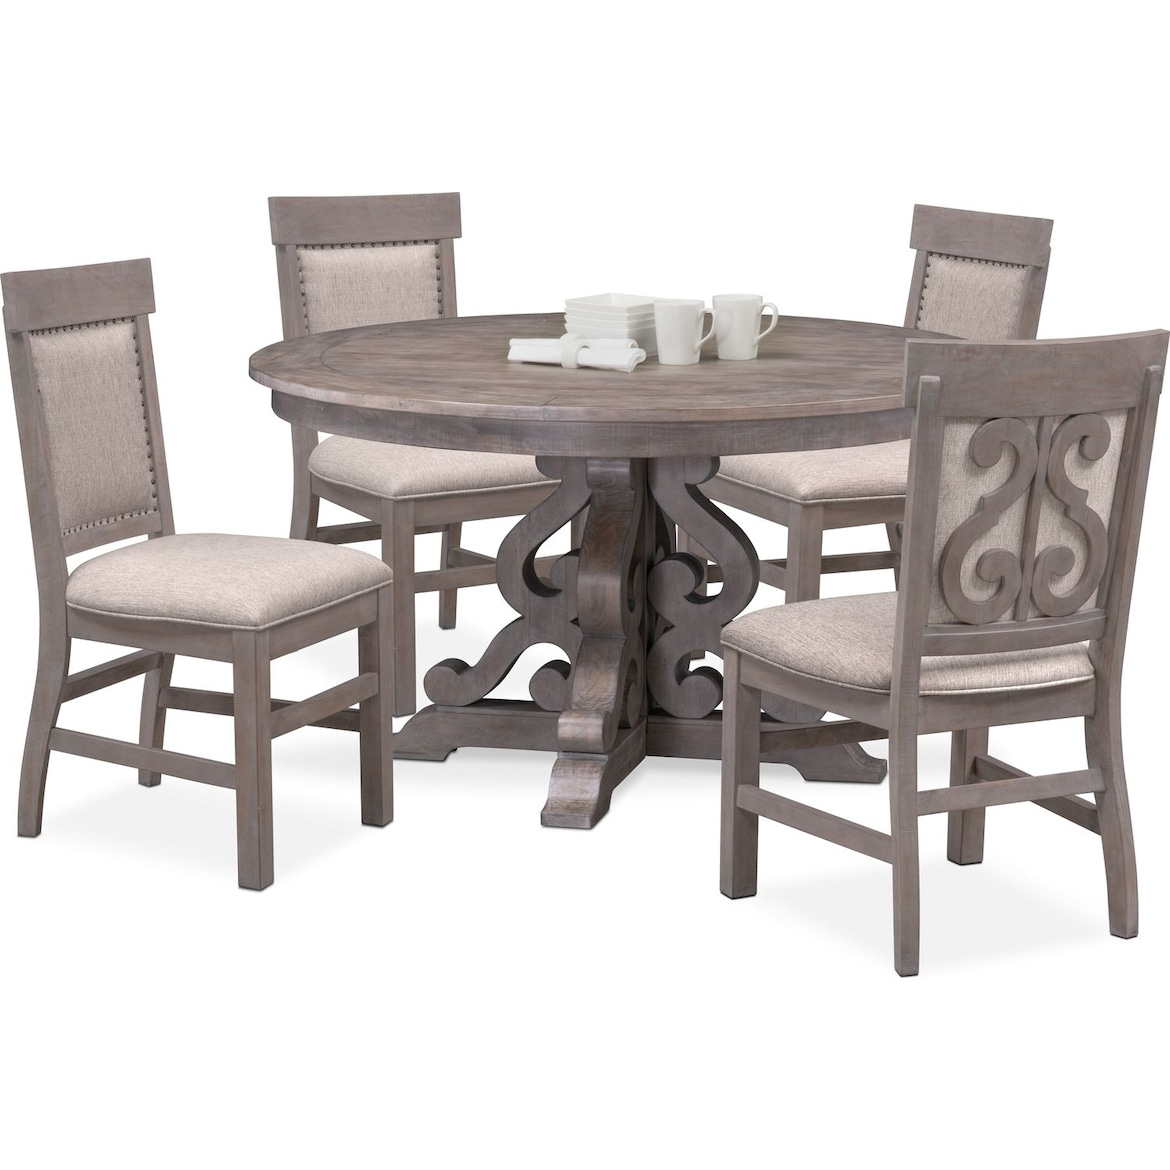 City Furniture Dining Room: Charthouse Round Dining Table And 4 Upholstered Side